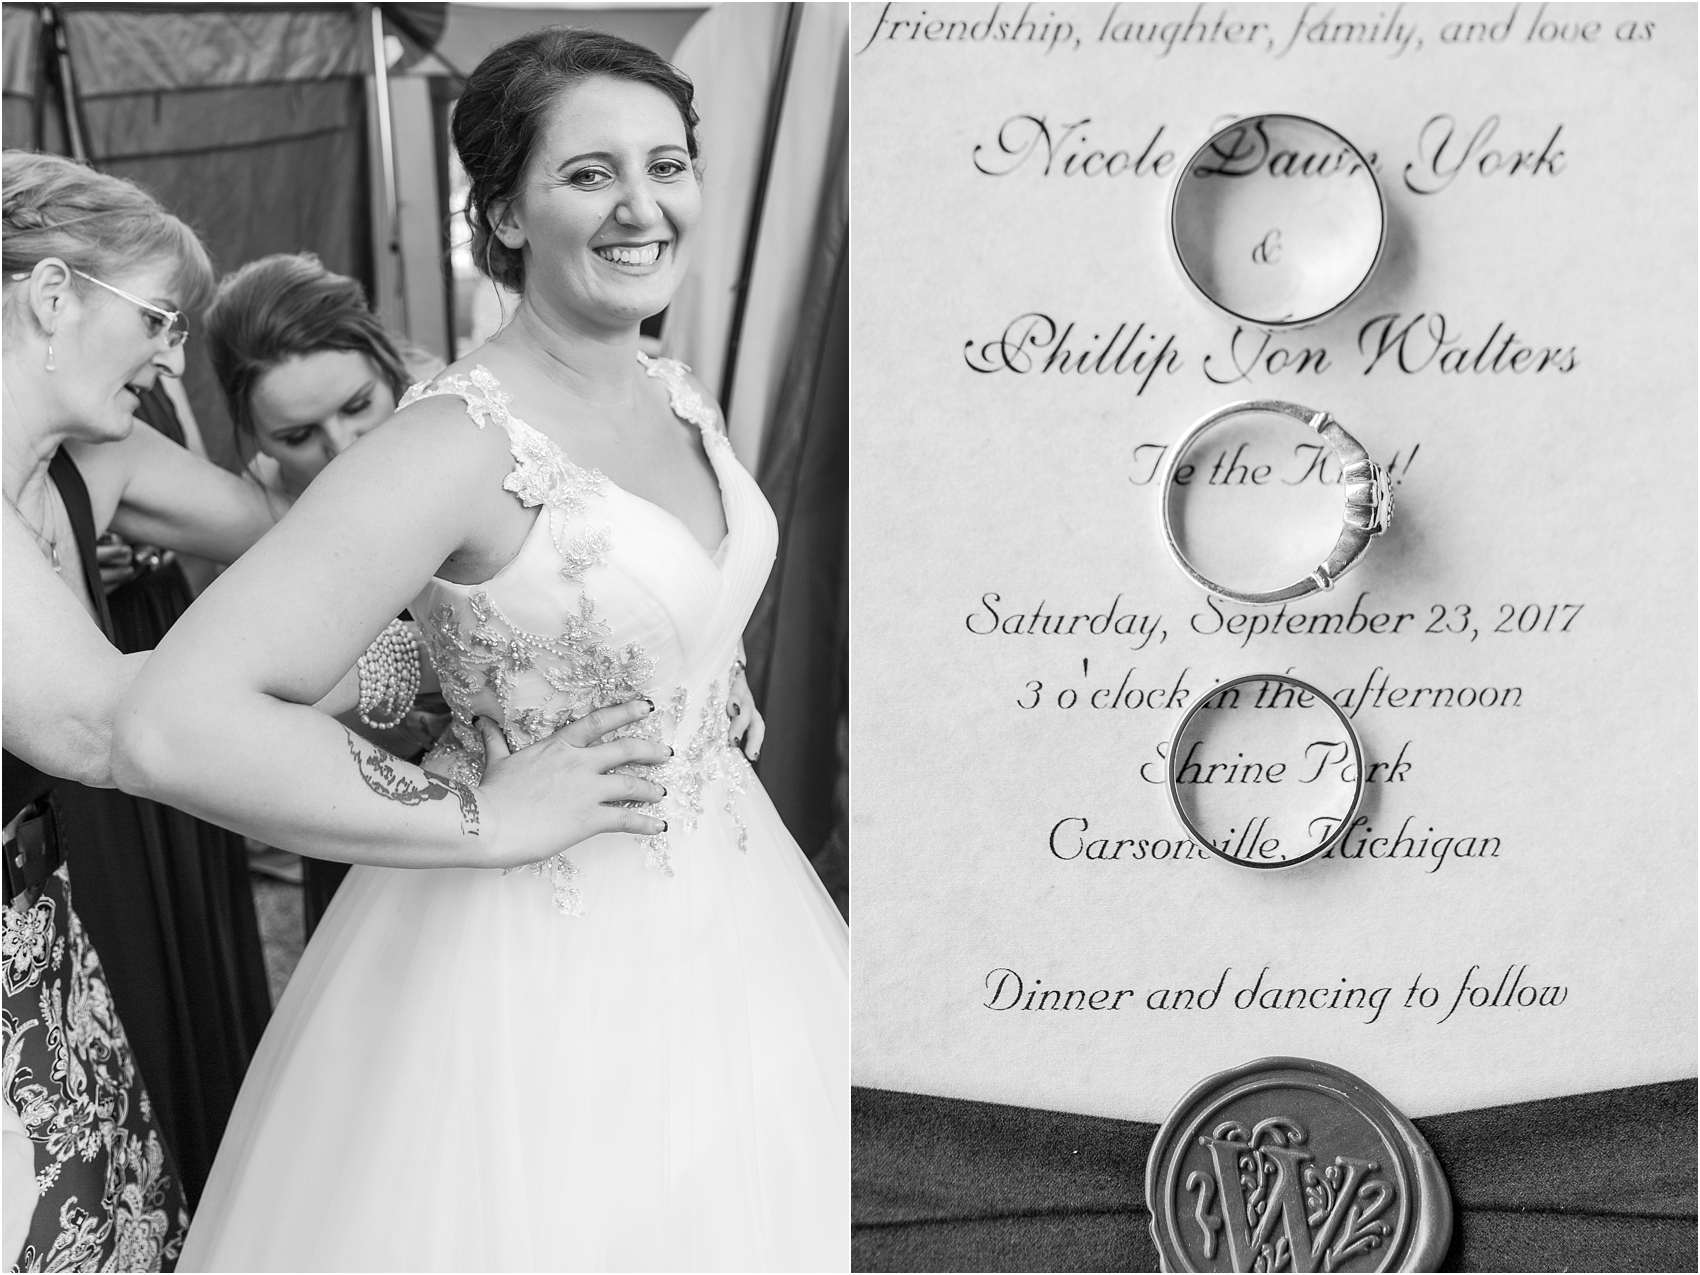 scottish-inspired-wedding-photos-in-the-country-in-port-sanilac-michigan-by-courtney-carolyn-photography_0005.jpg